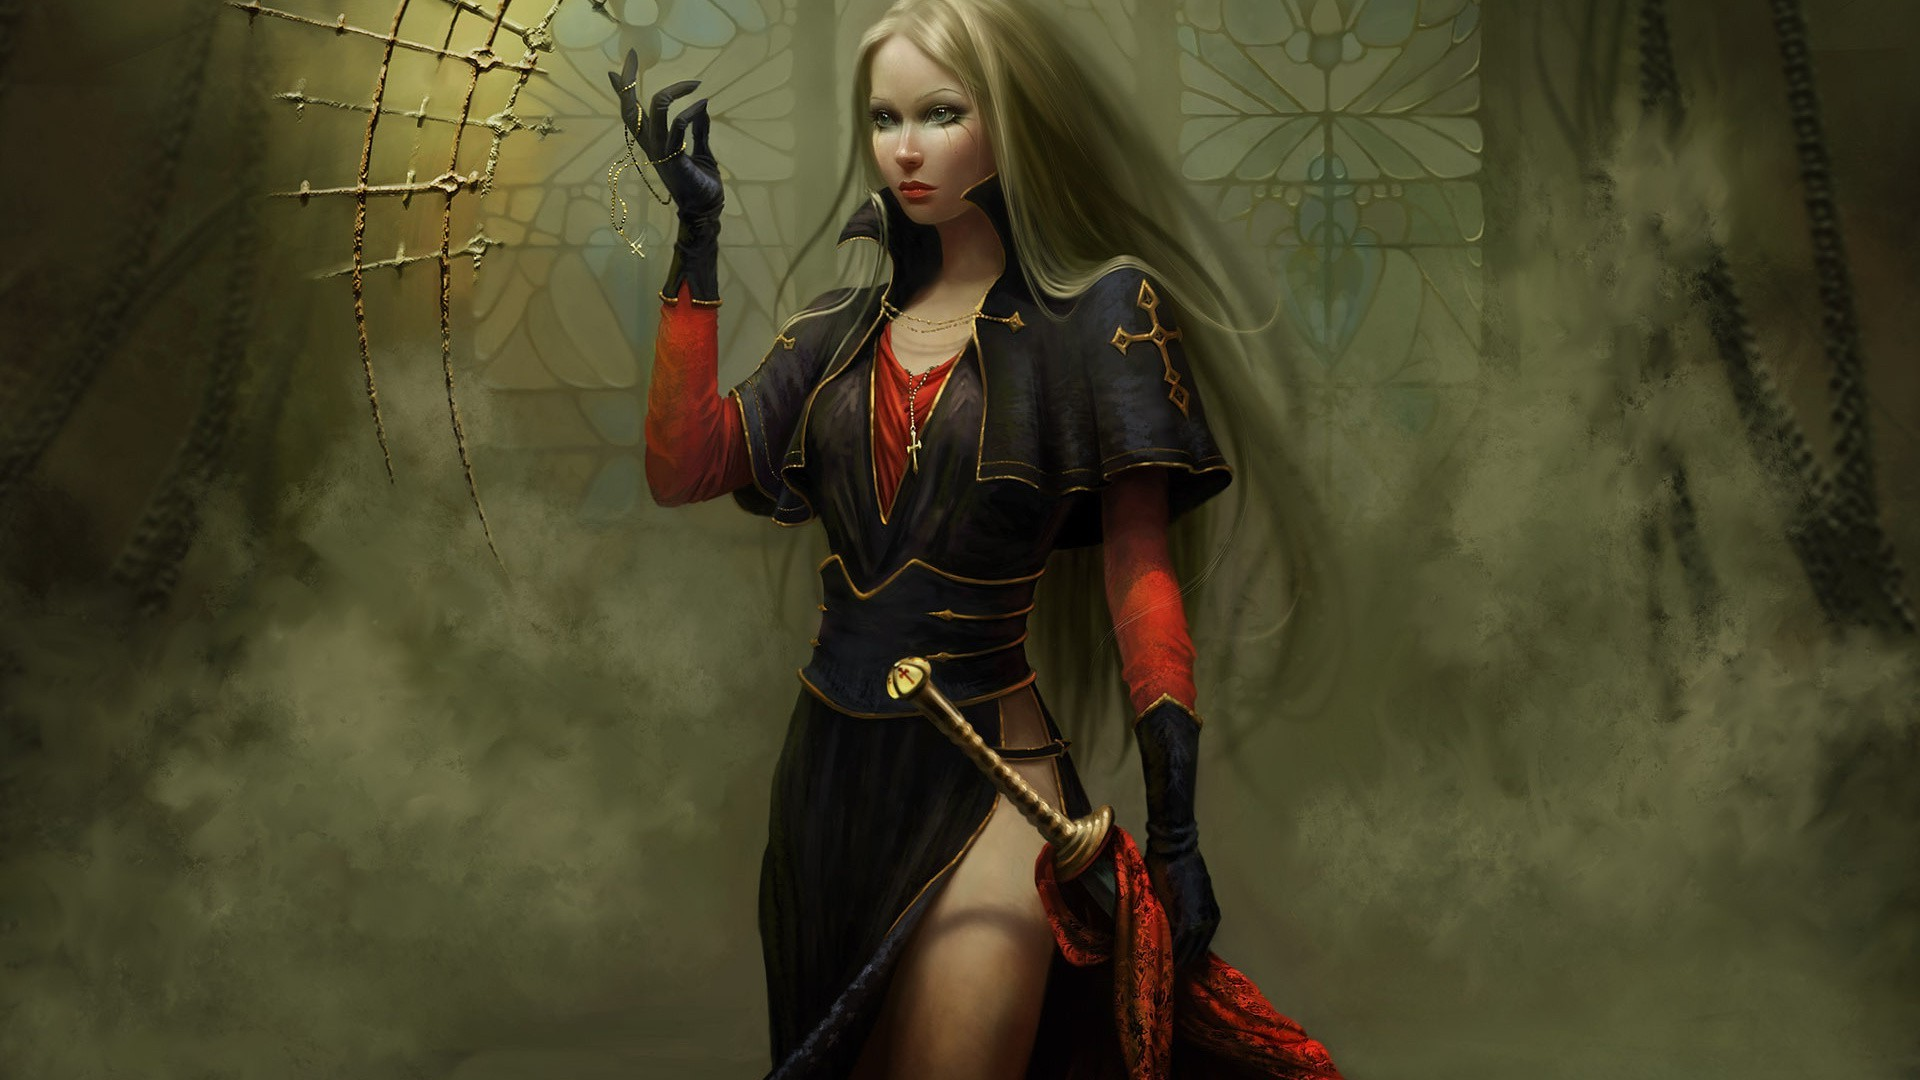 Spada Wonder Woman Women Blonde Long Hair Warrior Fantasy Art Digital